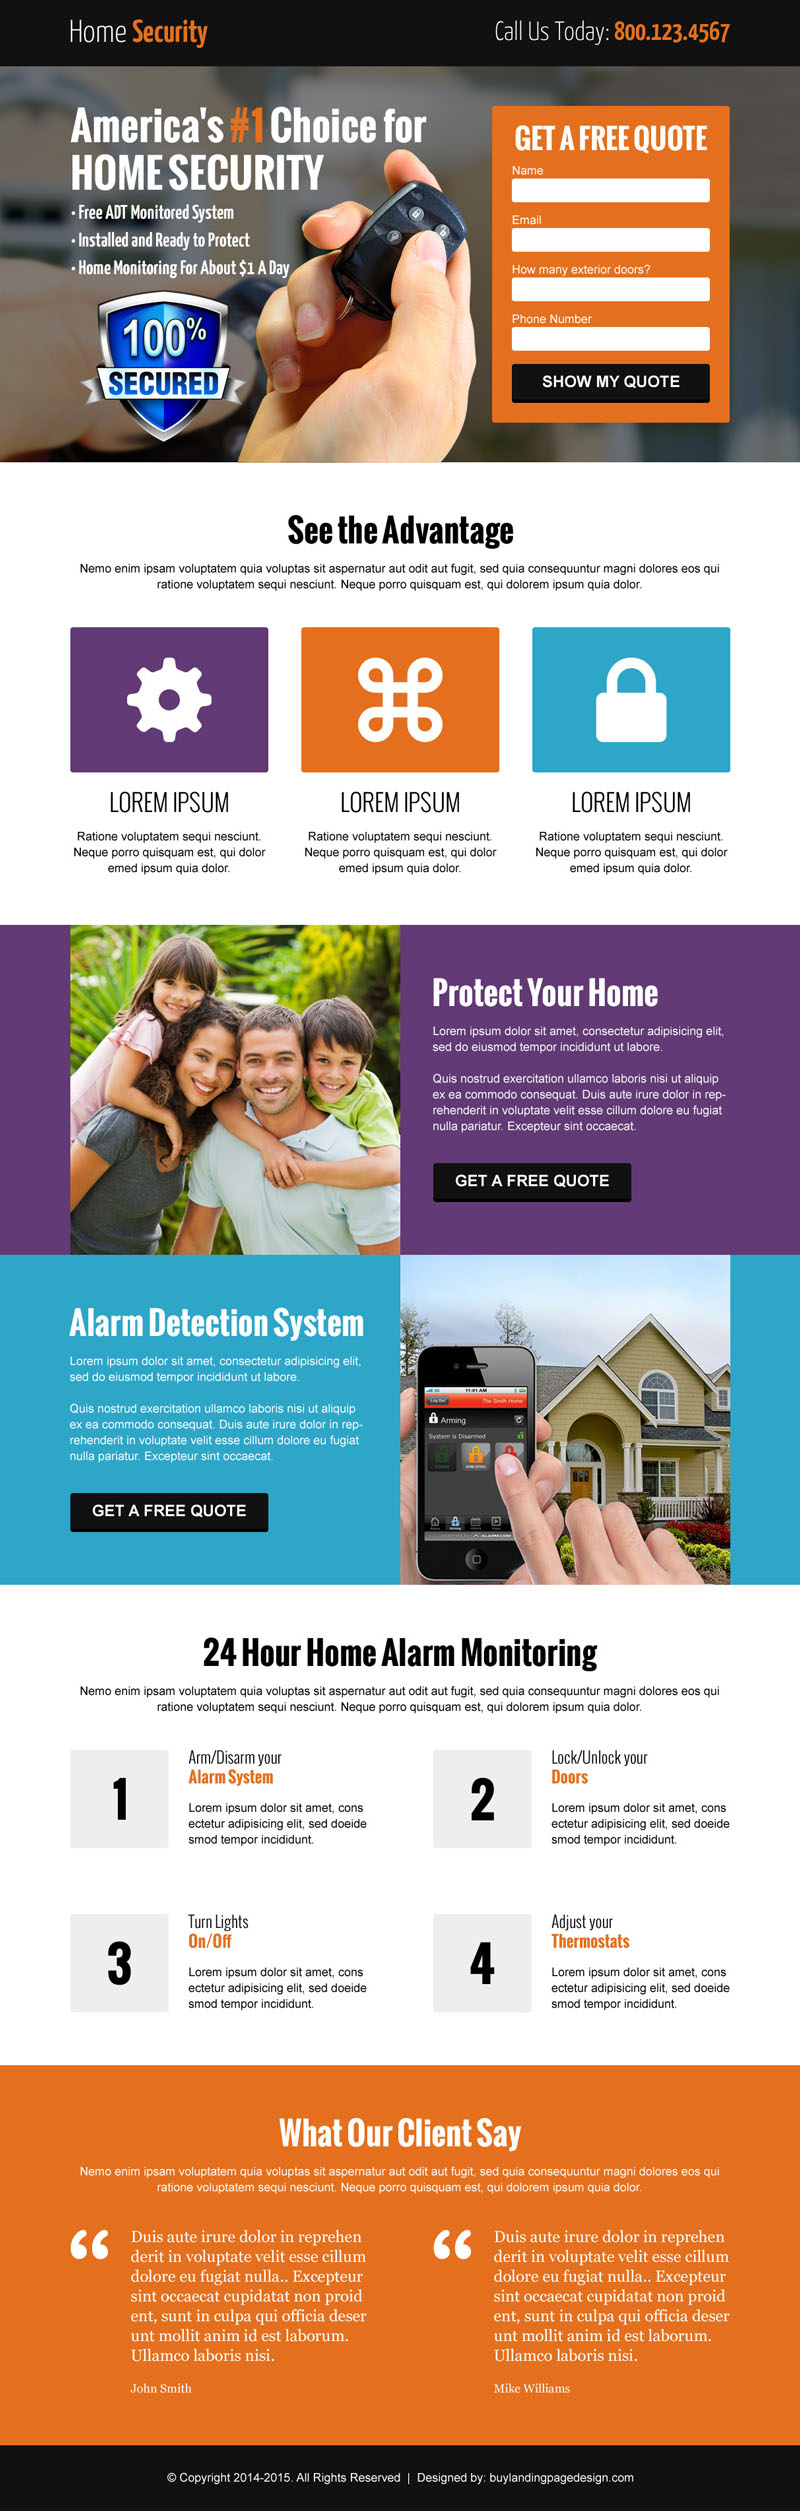 usa-home-security-free-quote-service-lead-capture-converting-responsive-landing-page-design-003